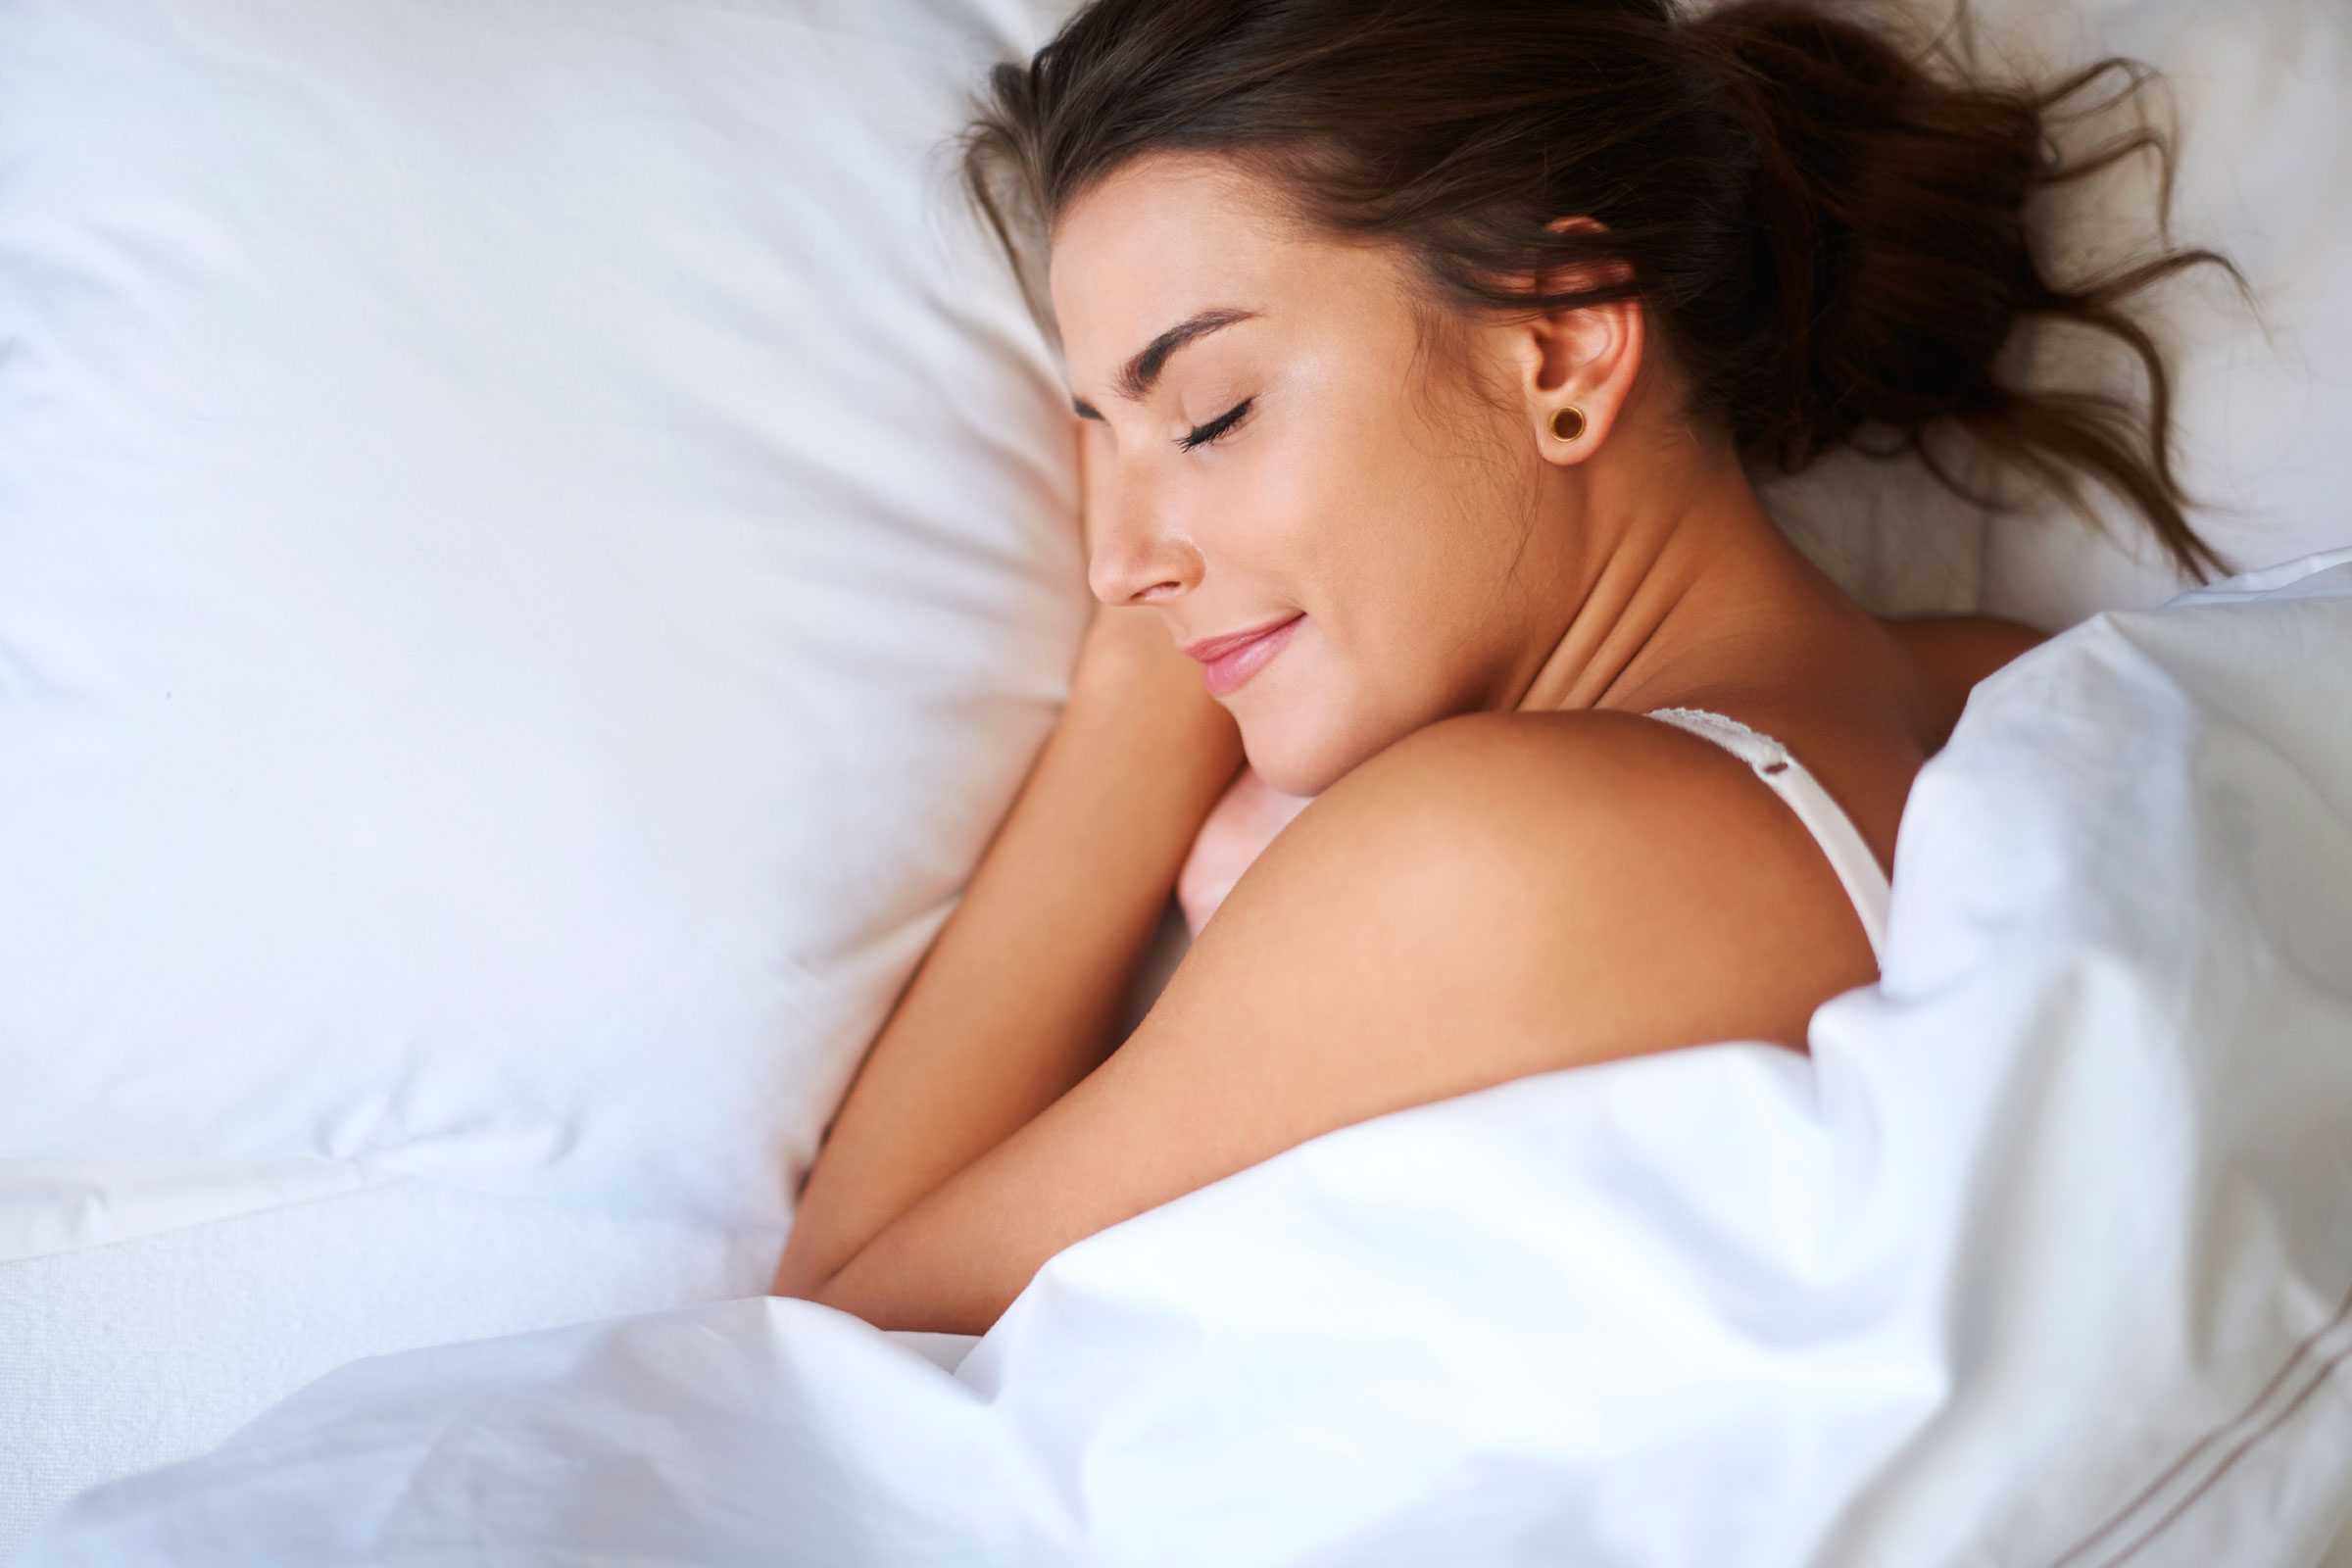 The 4 Stages of Sleep and Why They Matter